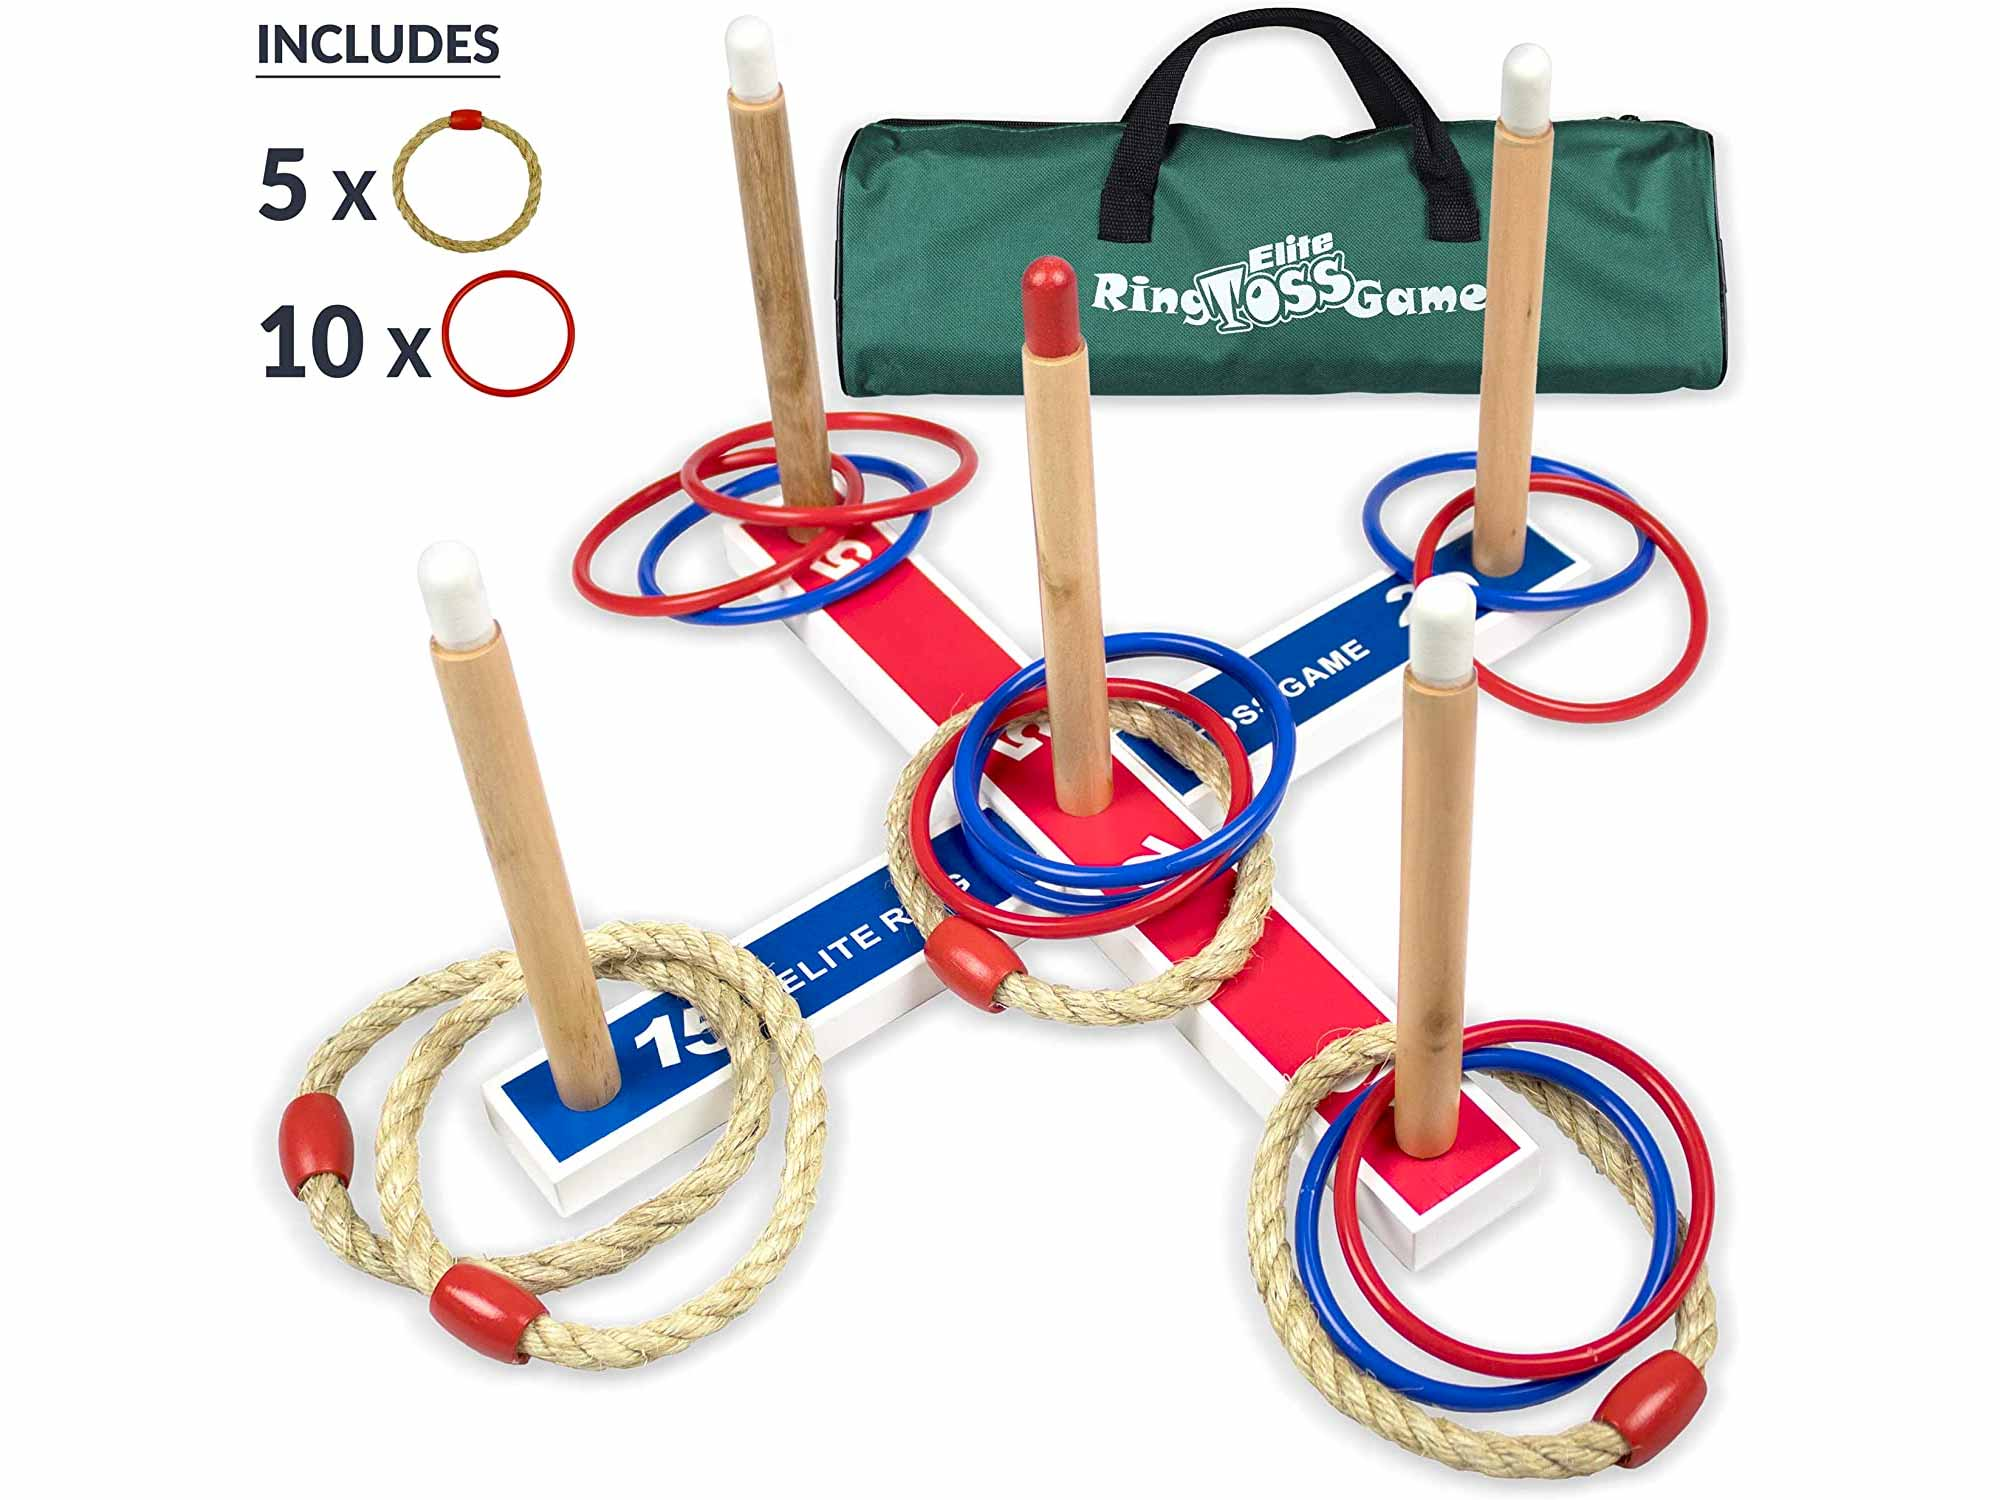 Elite Outdoor Games For Kids - Ring Toss Yard Games for Adults and Family